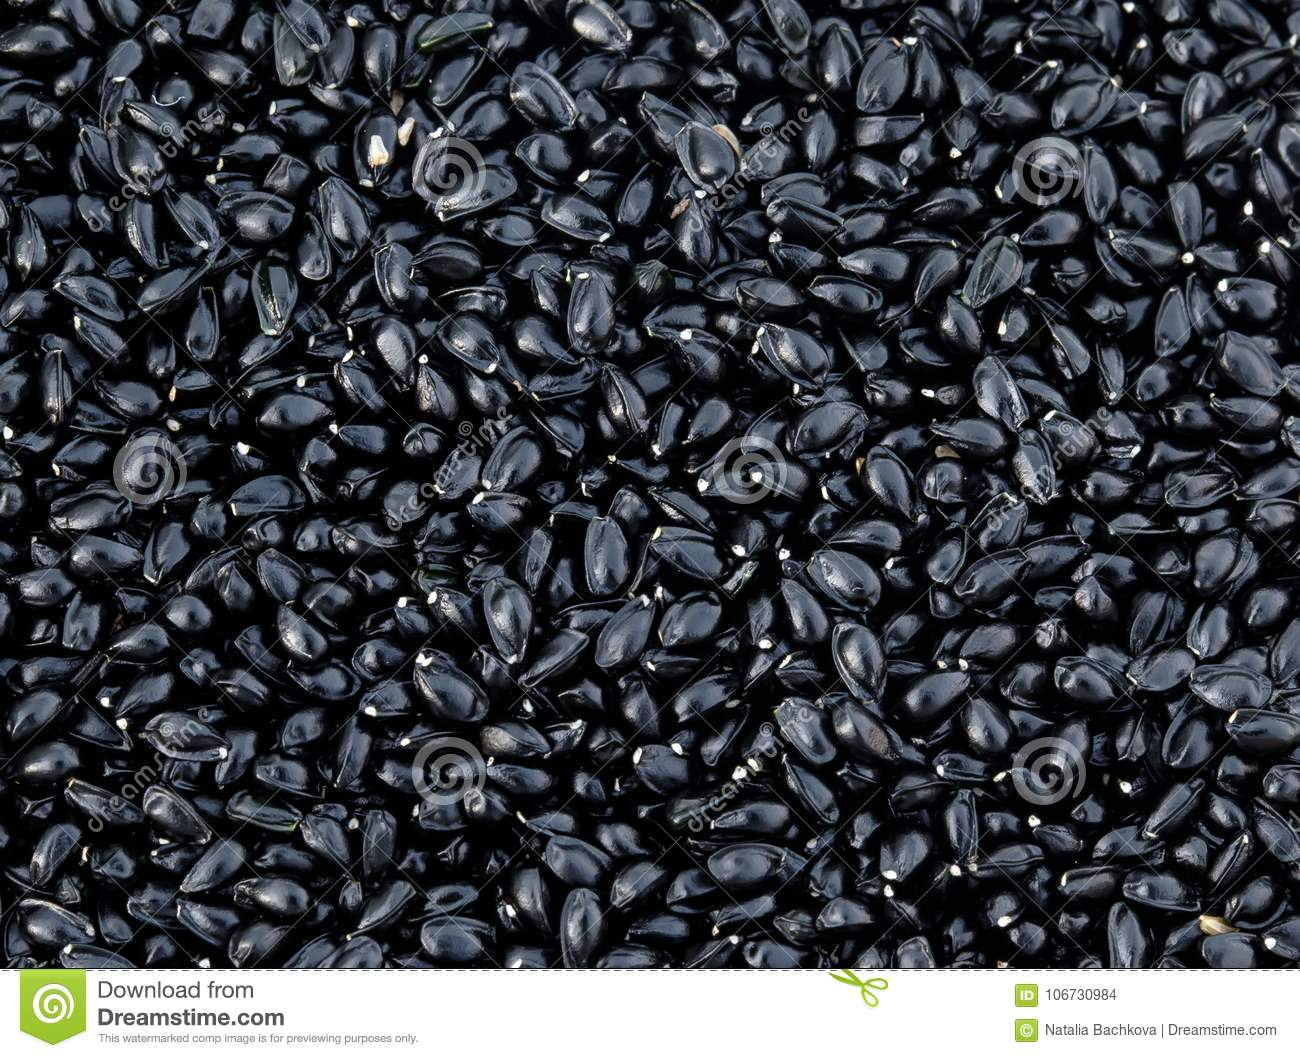 natural backdrop of many small shiny black seeds